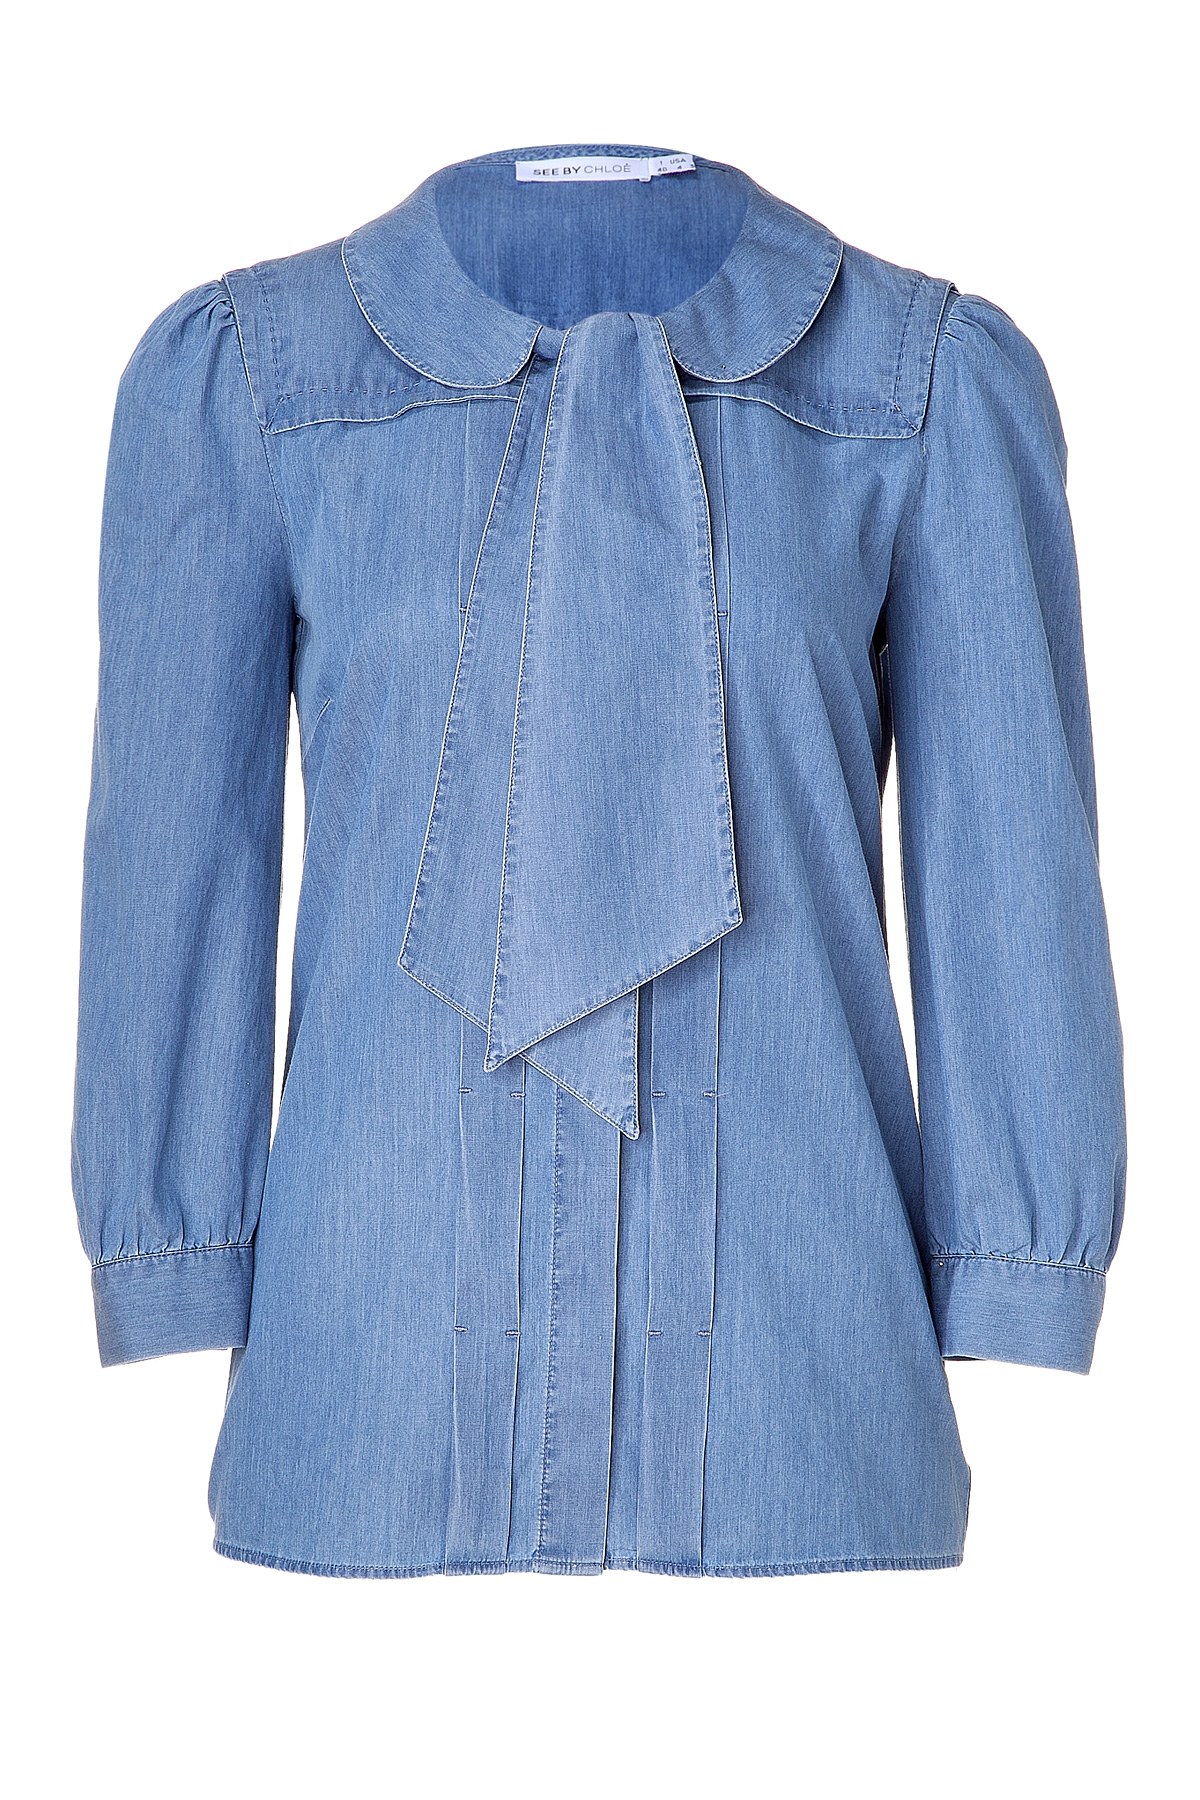 Denim tie-neck top from See by Chloe